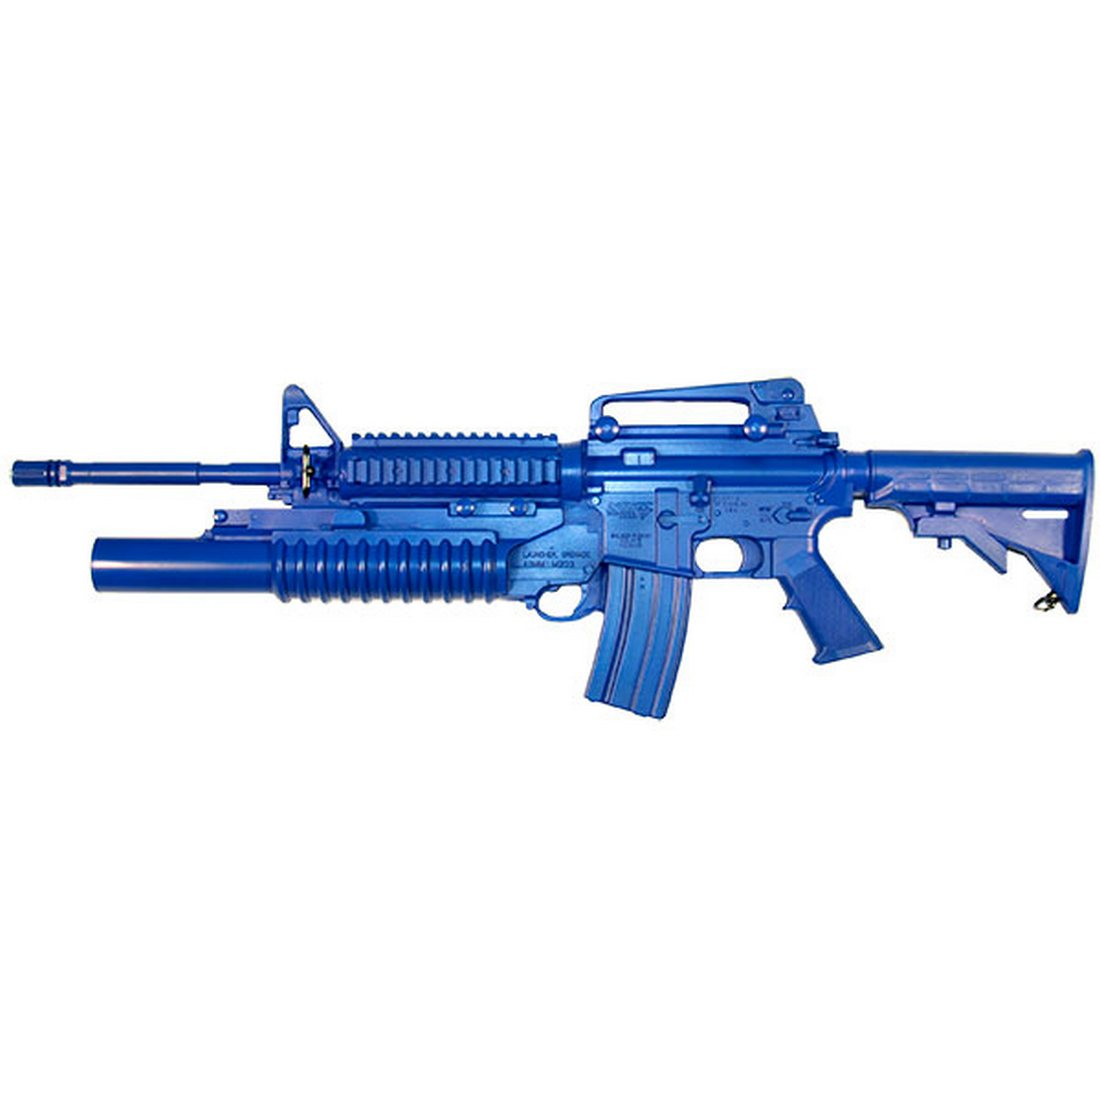 Blueguns FSM4RCSM203 M4 Closed Stock, Fwd Rail, M203 Grenade Launcher